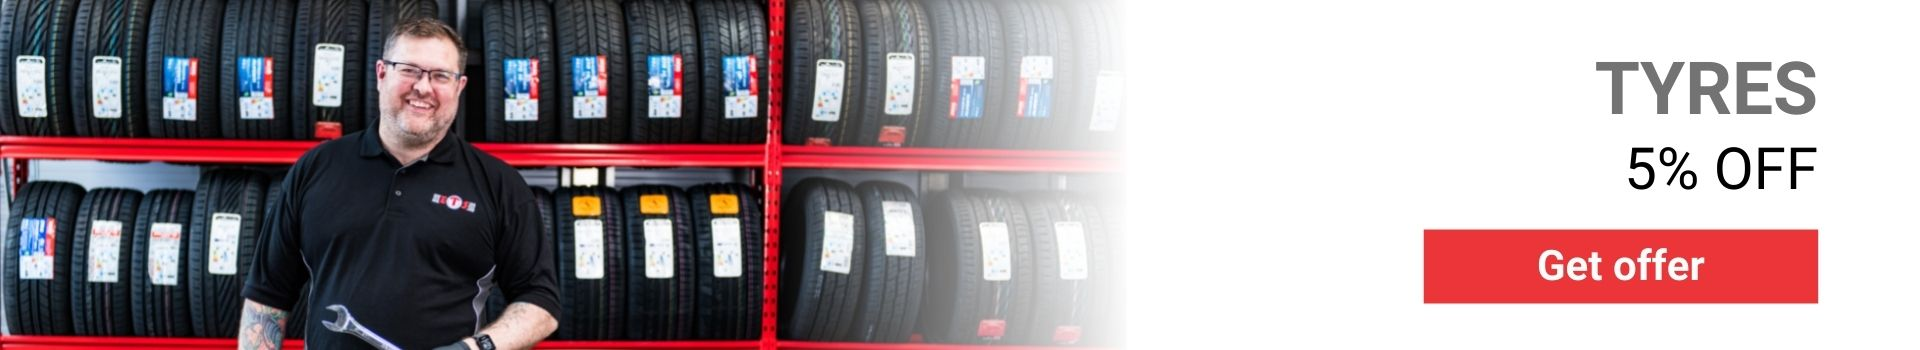 5% OFF TYRES BANNER